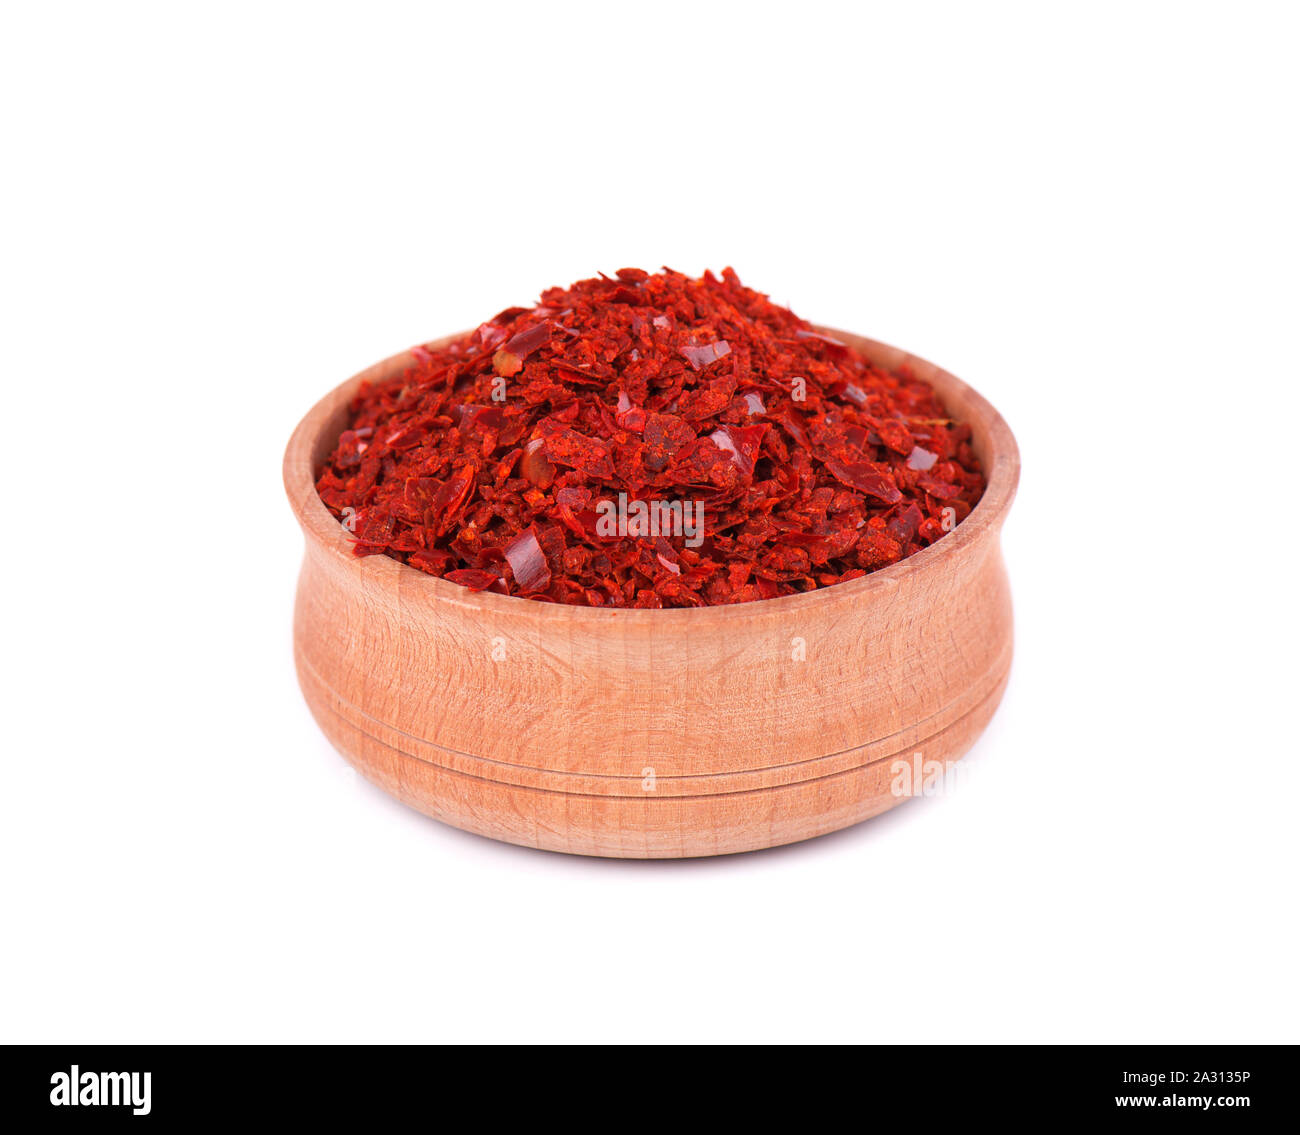 Pile crushed red cayenne pepper, dried chili flakes isolated on white background. Crushed red hot pepper in wooden bowl isolated on white. Stock Photo